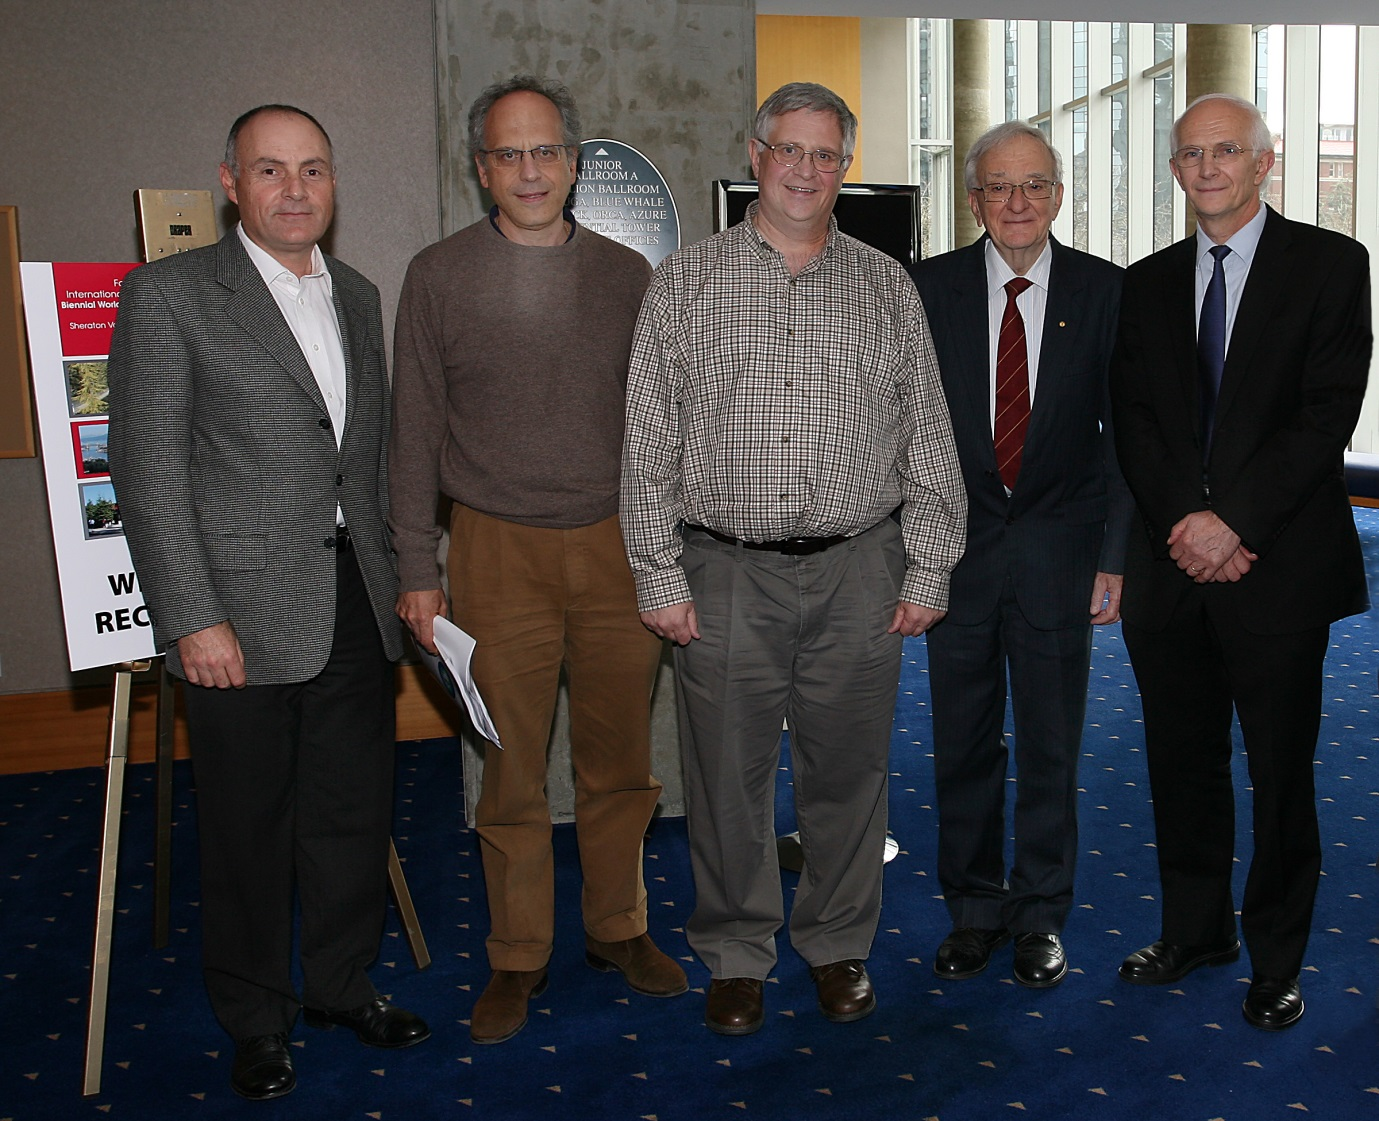 The first IAHA (HI) meeting, in Vancouver, 2011. Left to right: Sam Krickler (Canada), Alberto Piperno (Italy), Bob Rogers (Canada), Laurie Powell (USA), Pierre Brissot (France-EFAPH).